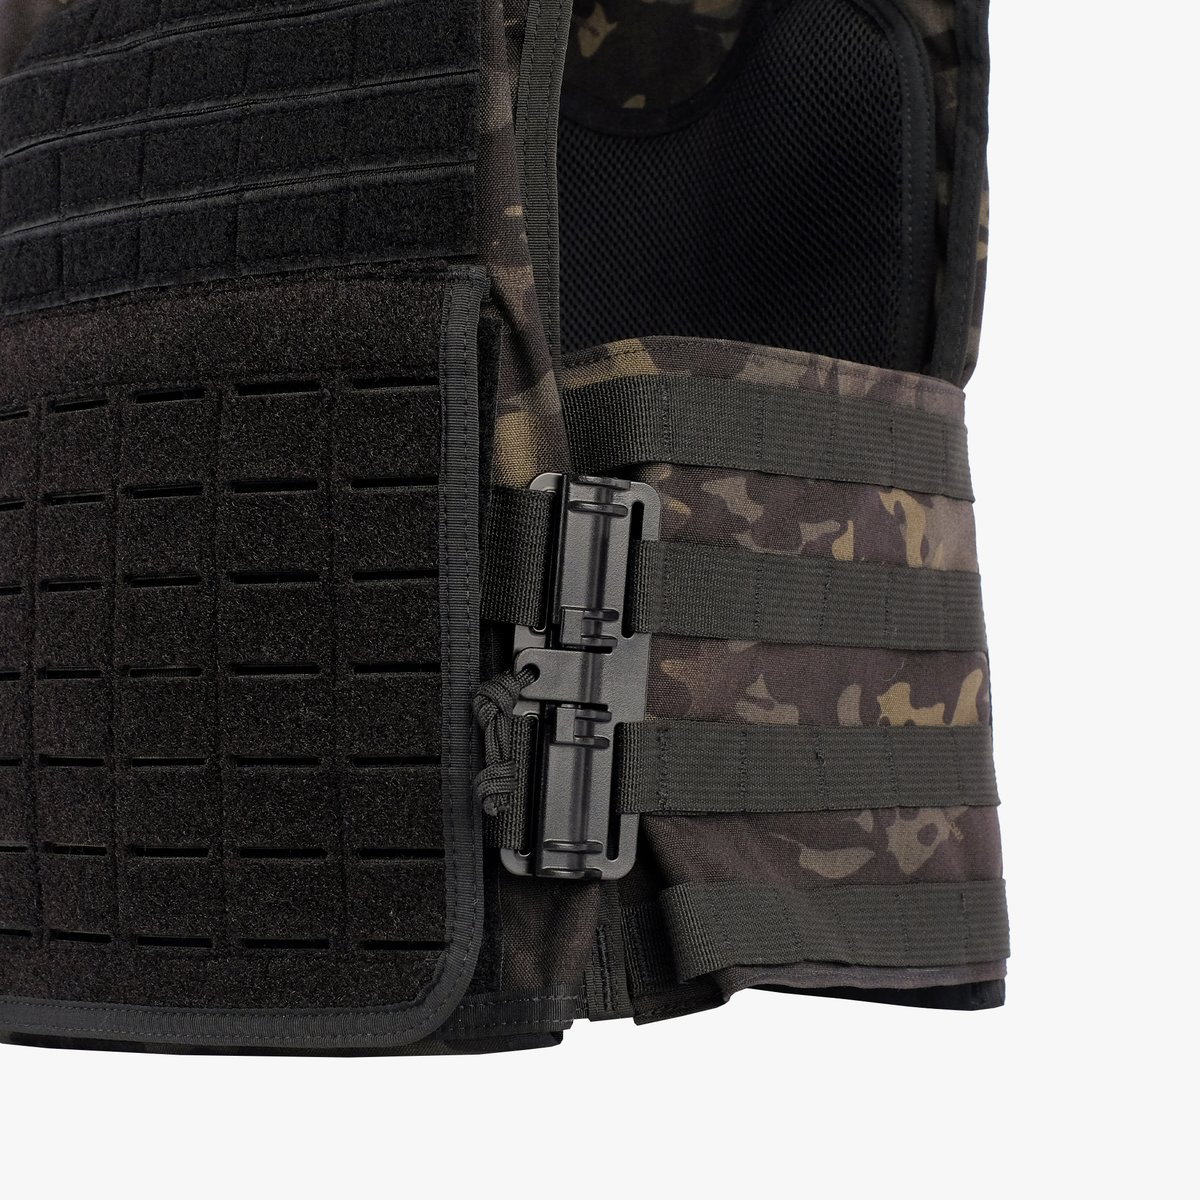 New Core Plate Carrier with Cummerbund Armor from Premier Body Armor